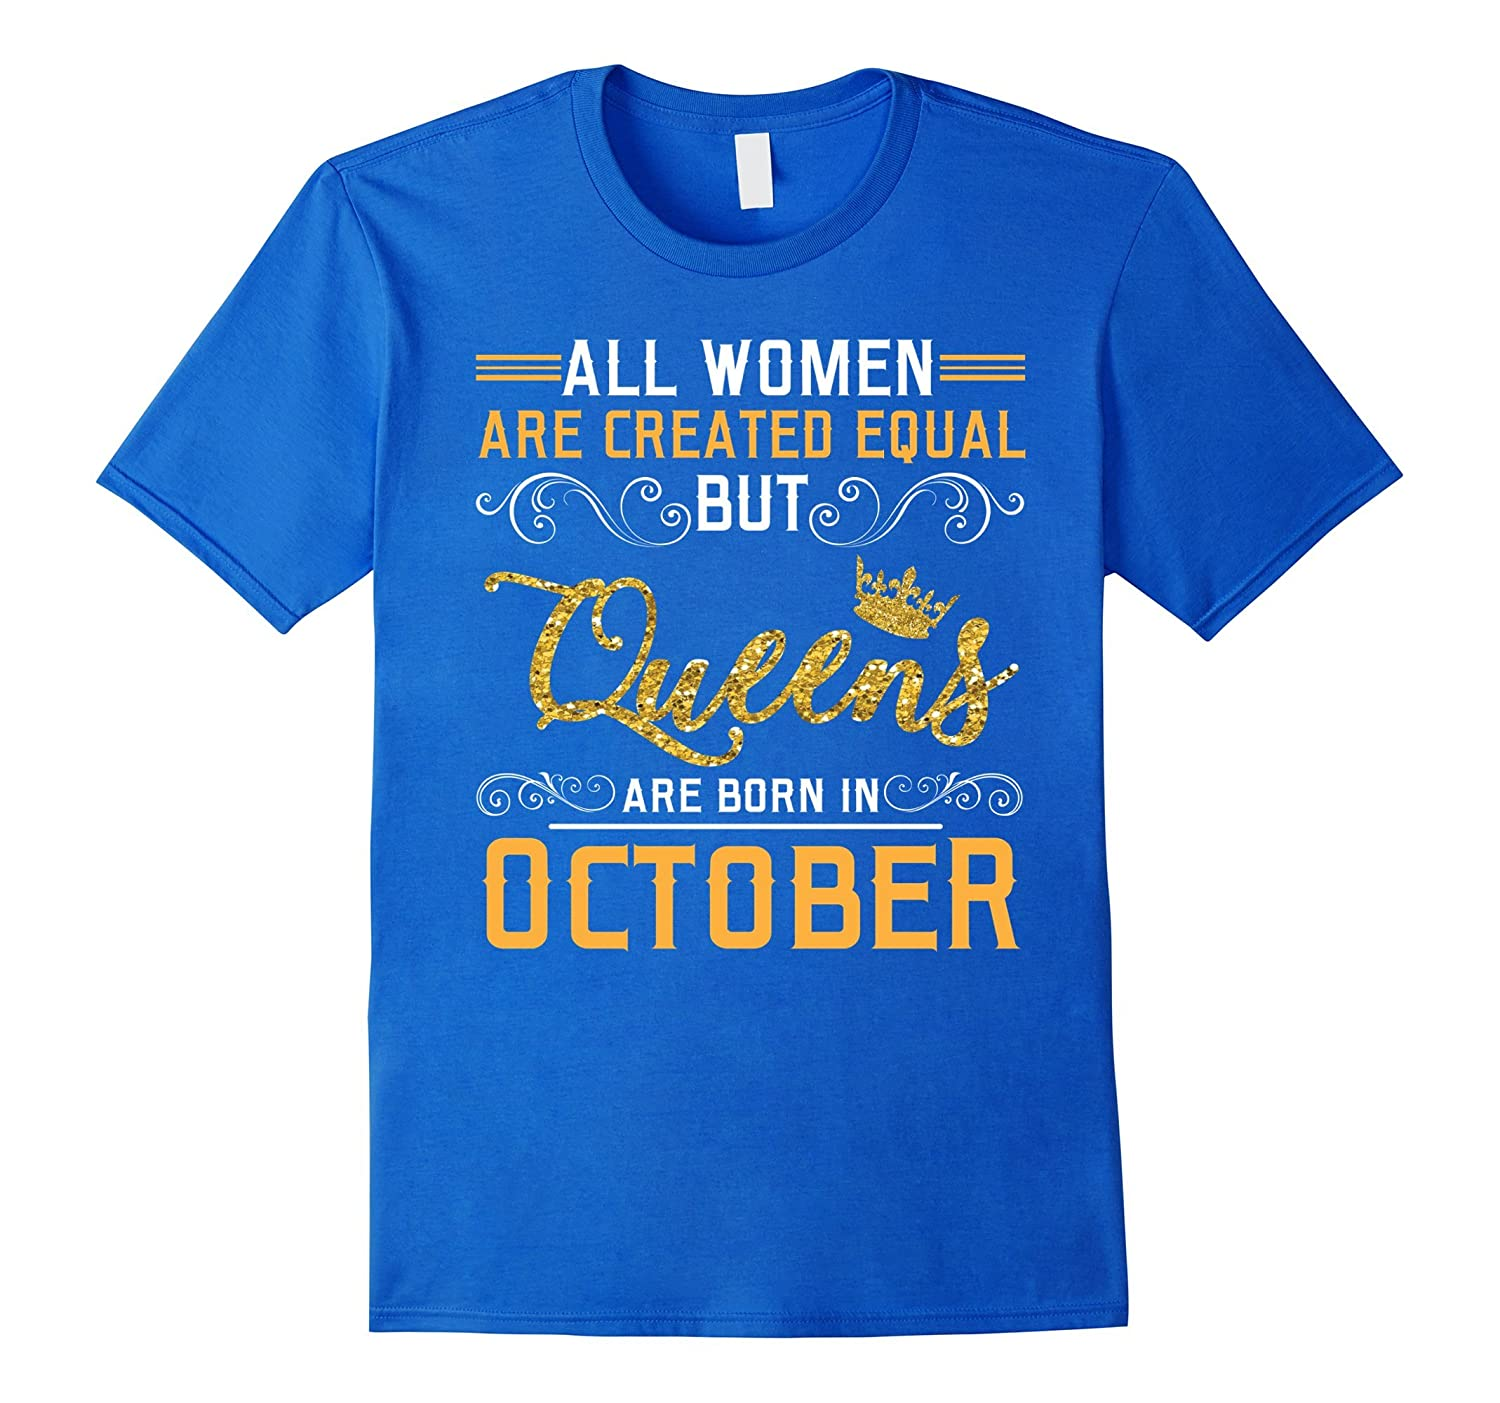 All Women Are Created Equal But Queens Are Born In October-FL